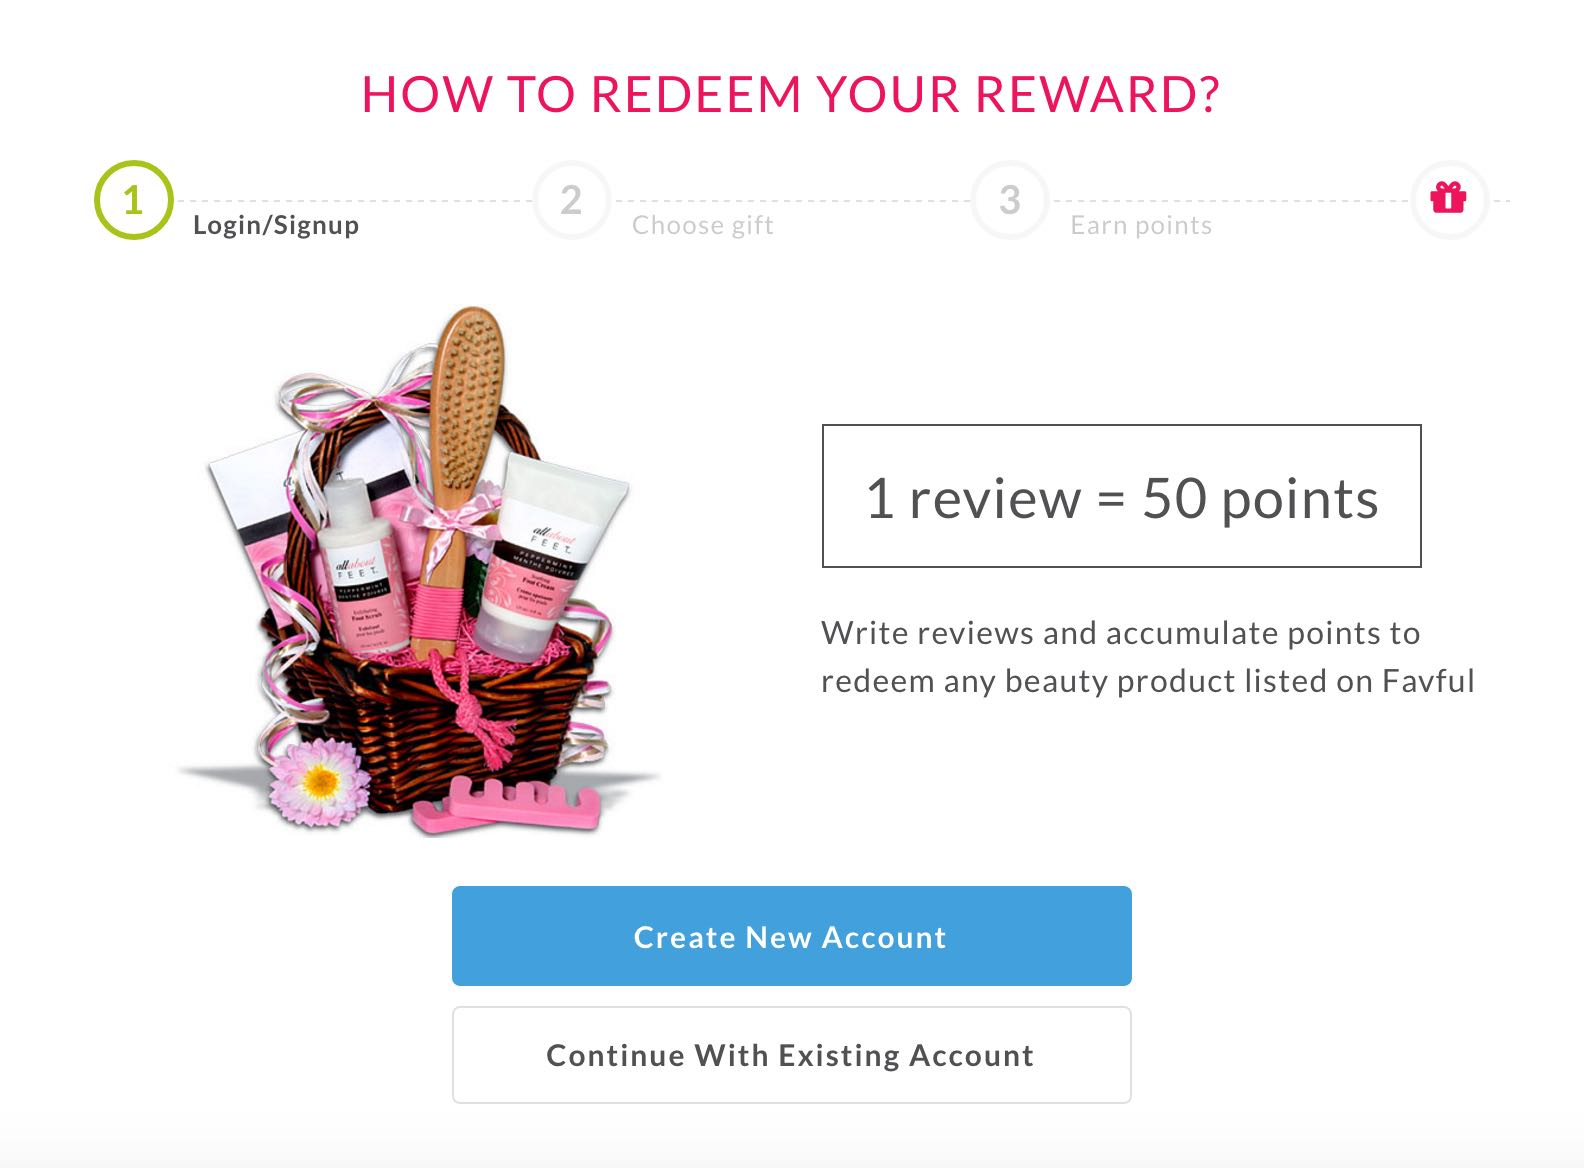 Rewards For Reviews Favful - AspirantSG